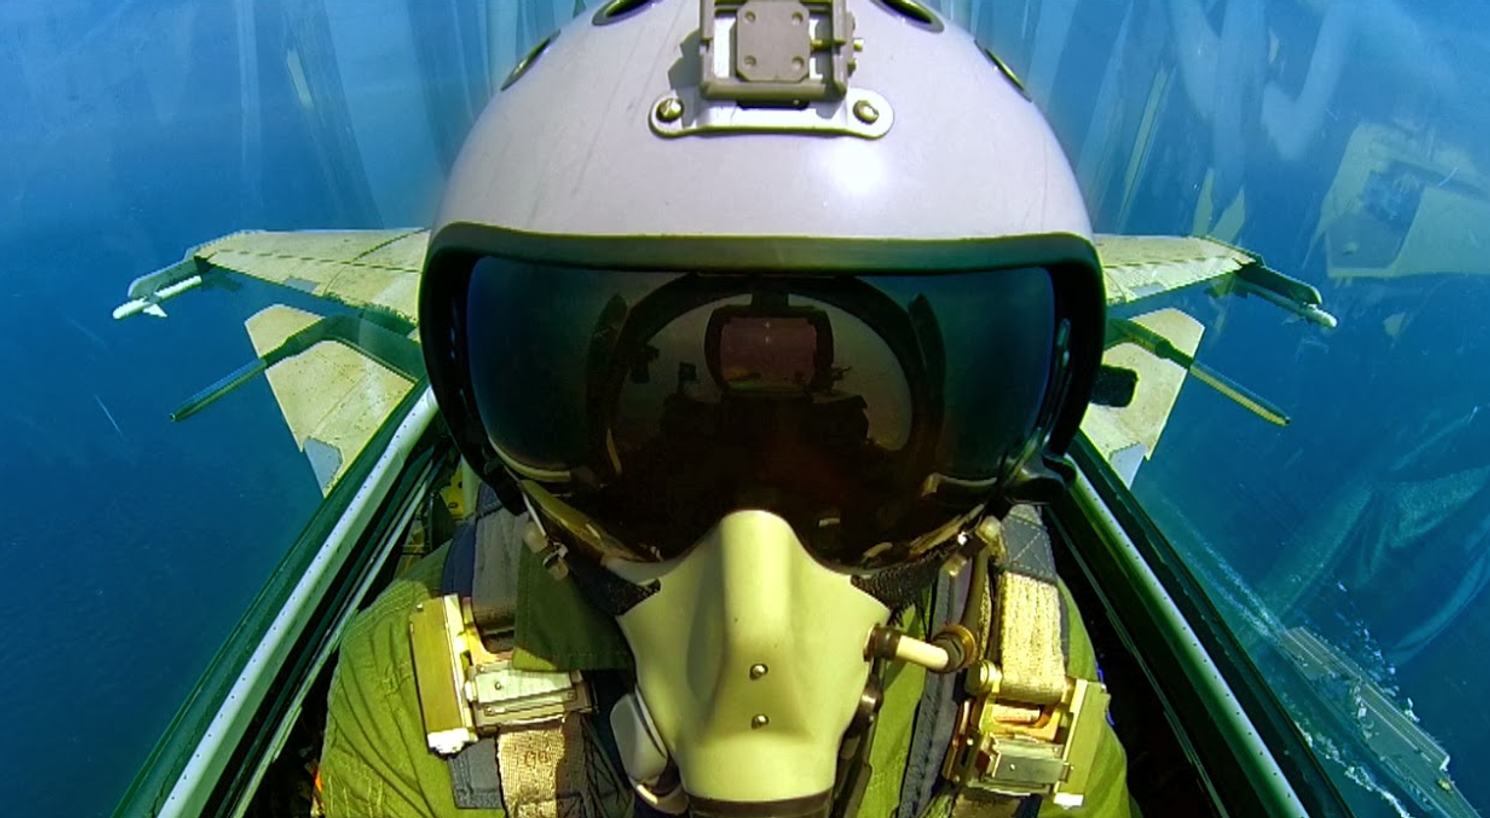 China Might Have Stealth Fighters, But How Good are the Pilots Who Fly Them?